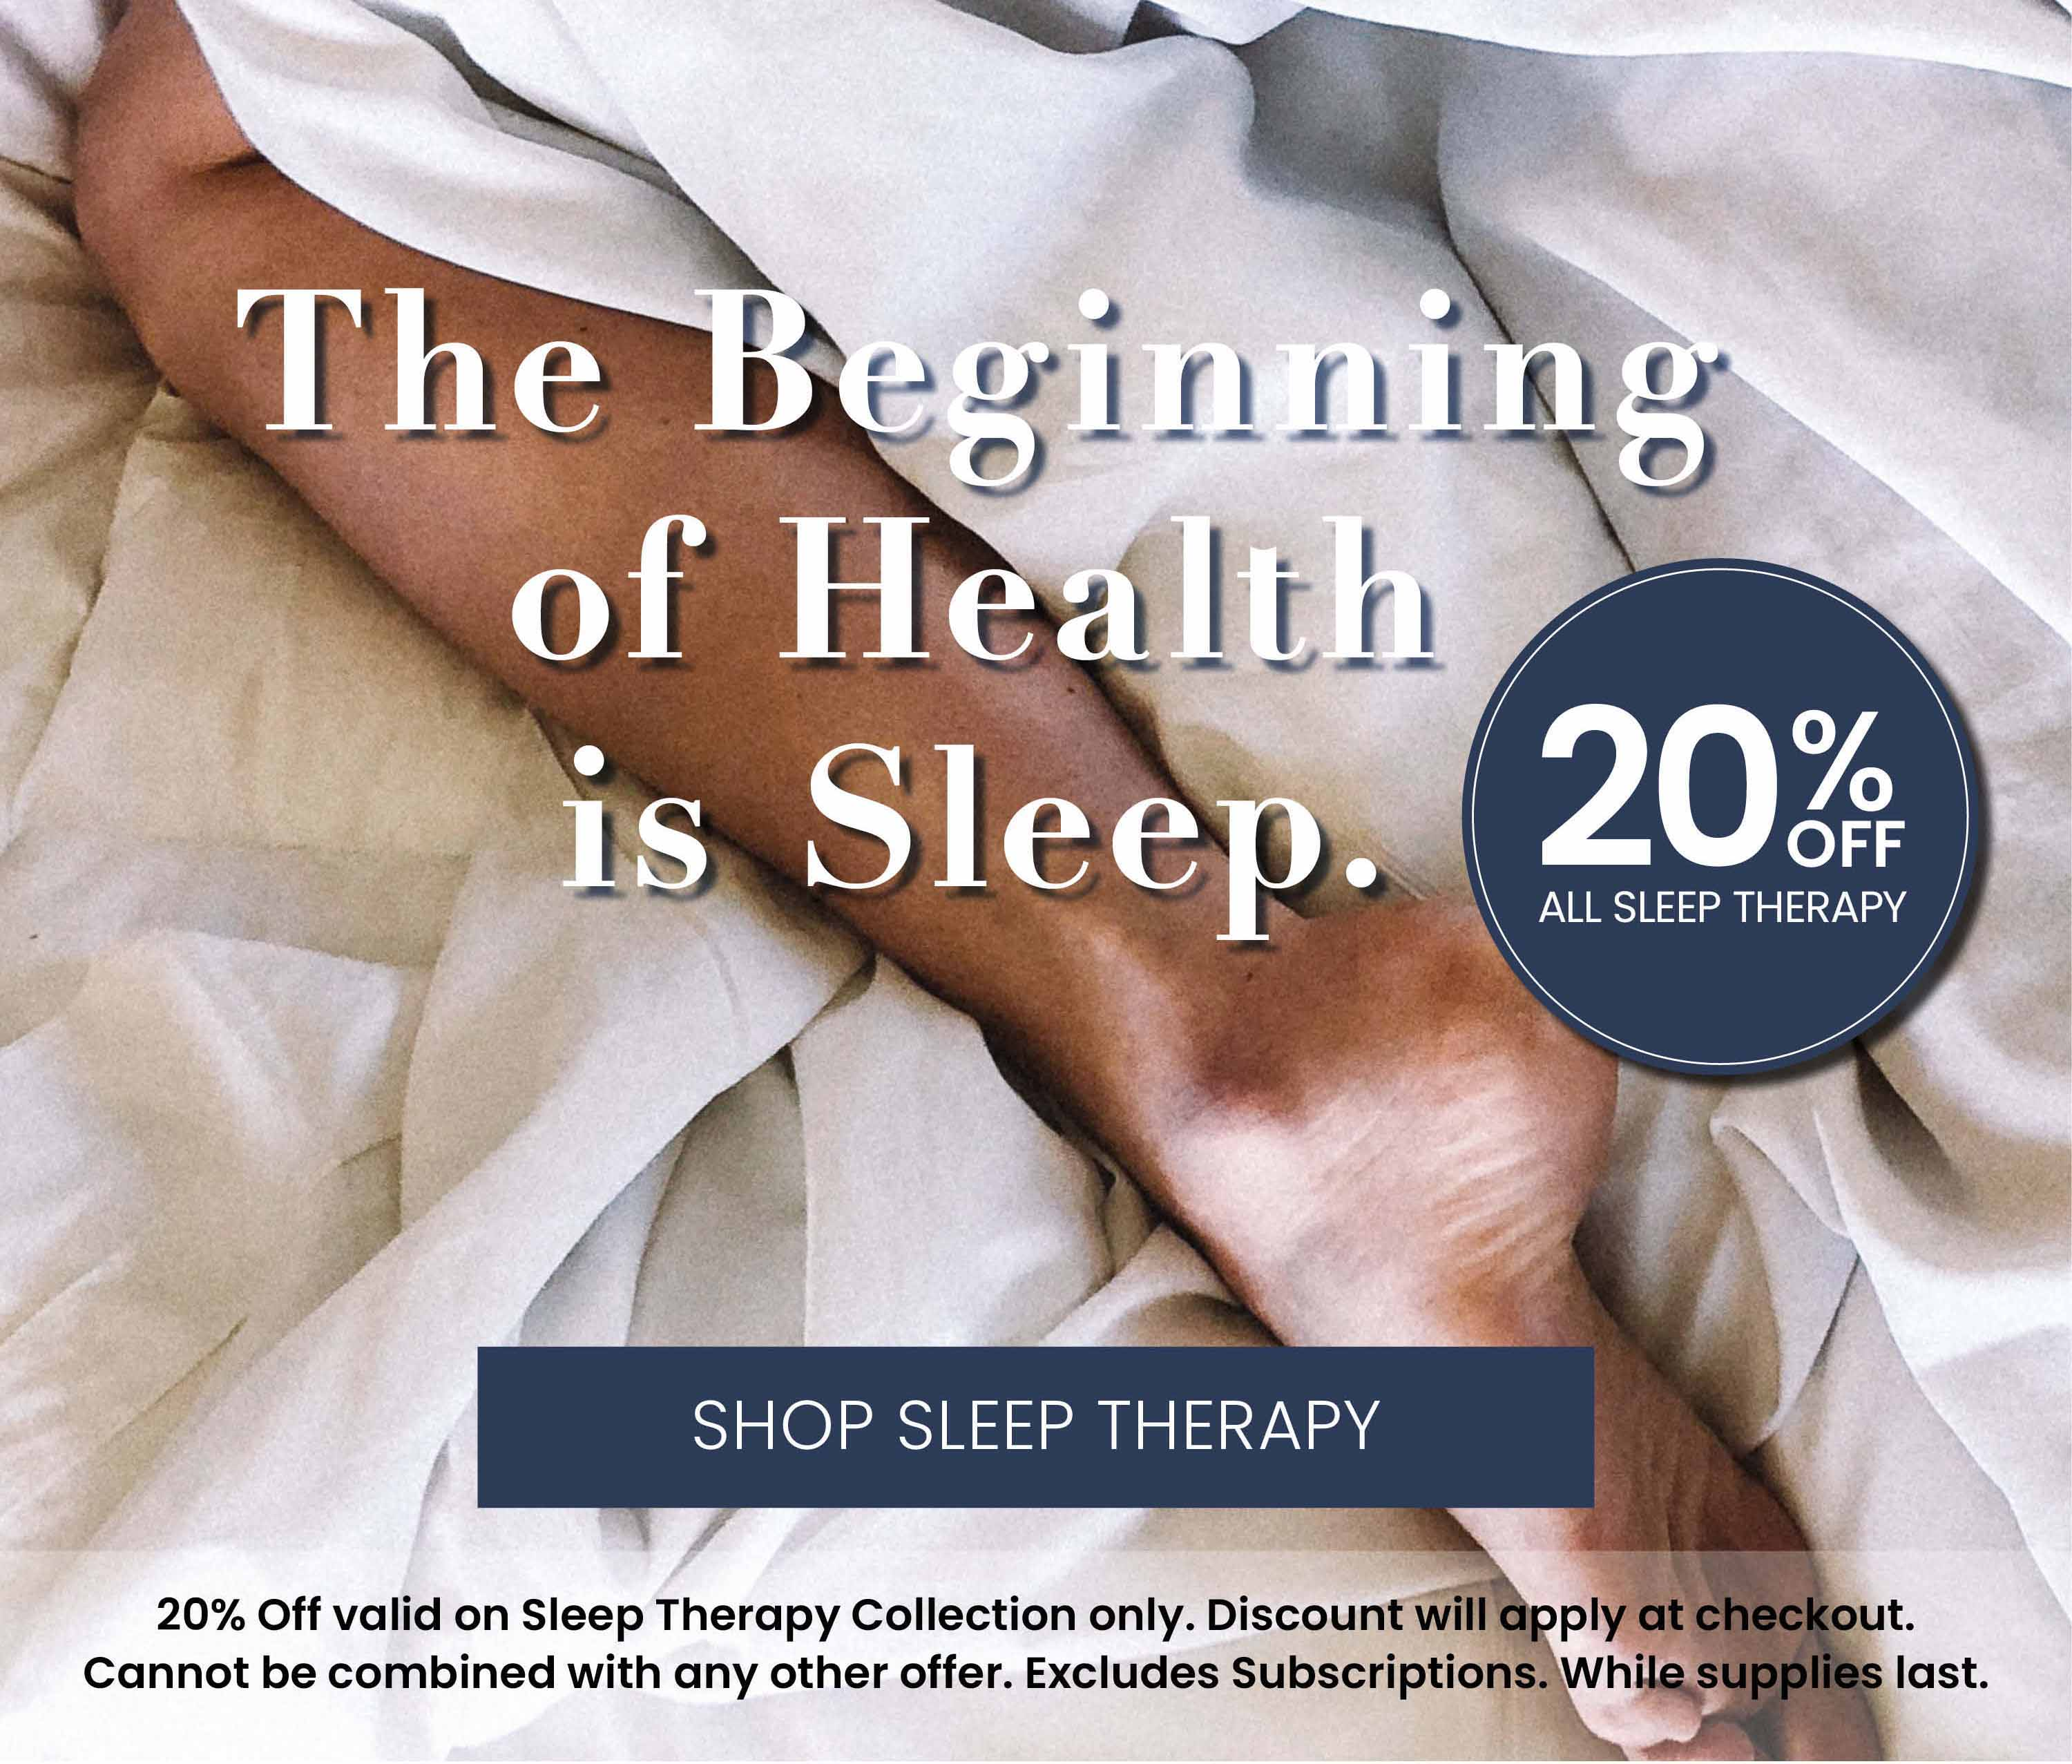 The Beginning of Health is Sleep.  20% Off All Sleep Therapy. Discount will apply at checkout. Excludes Subscriptions. While supplies last.